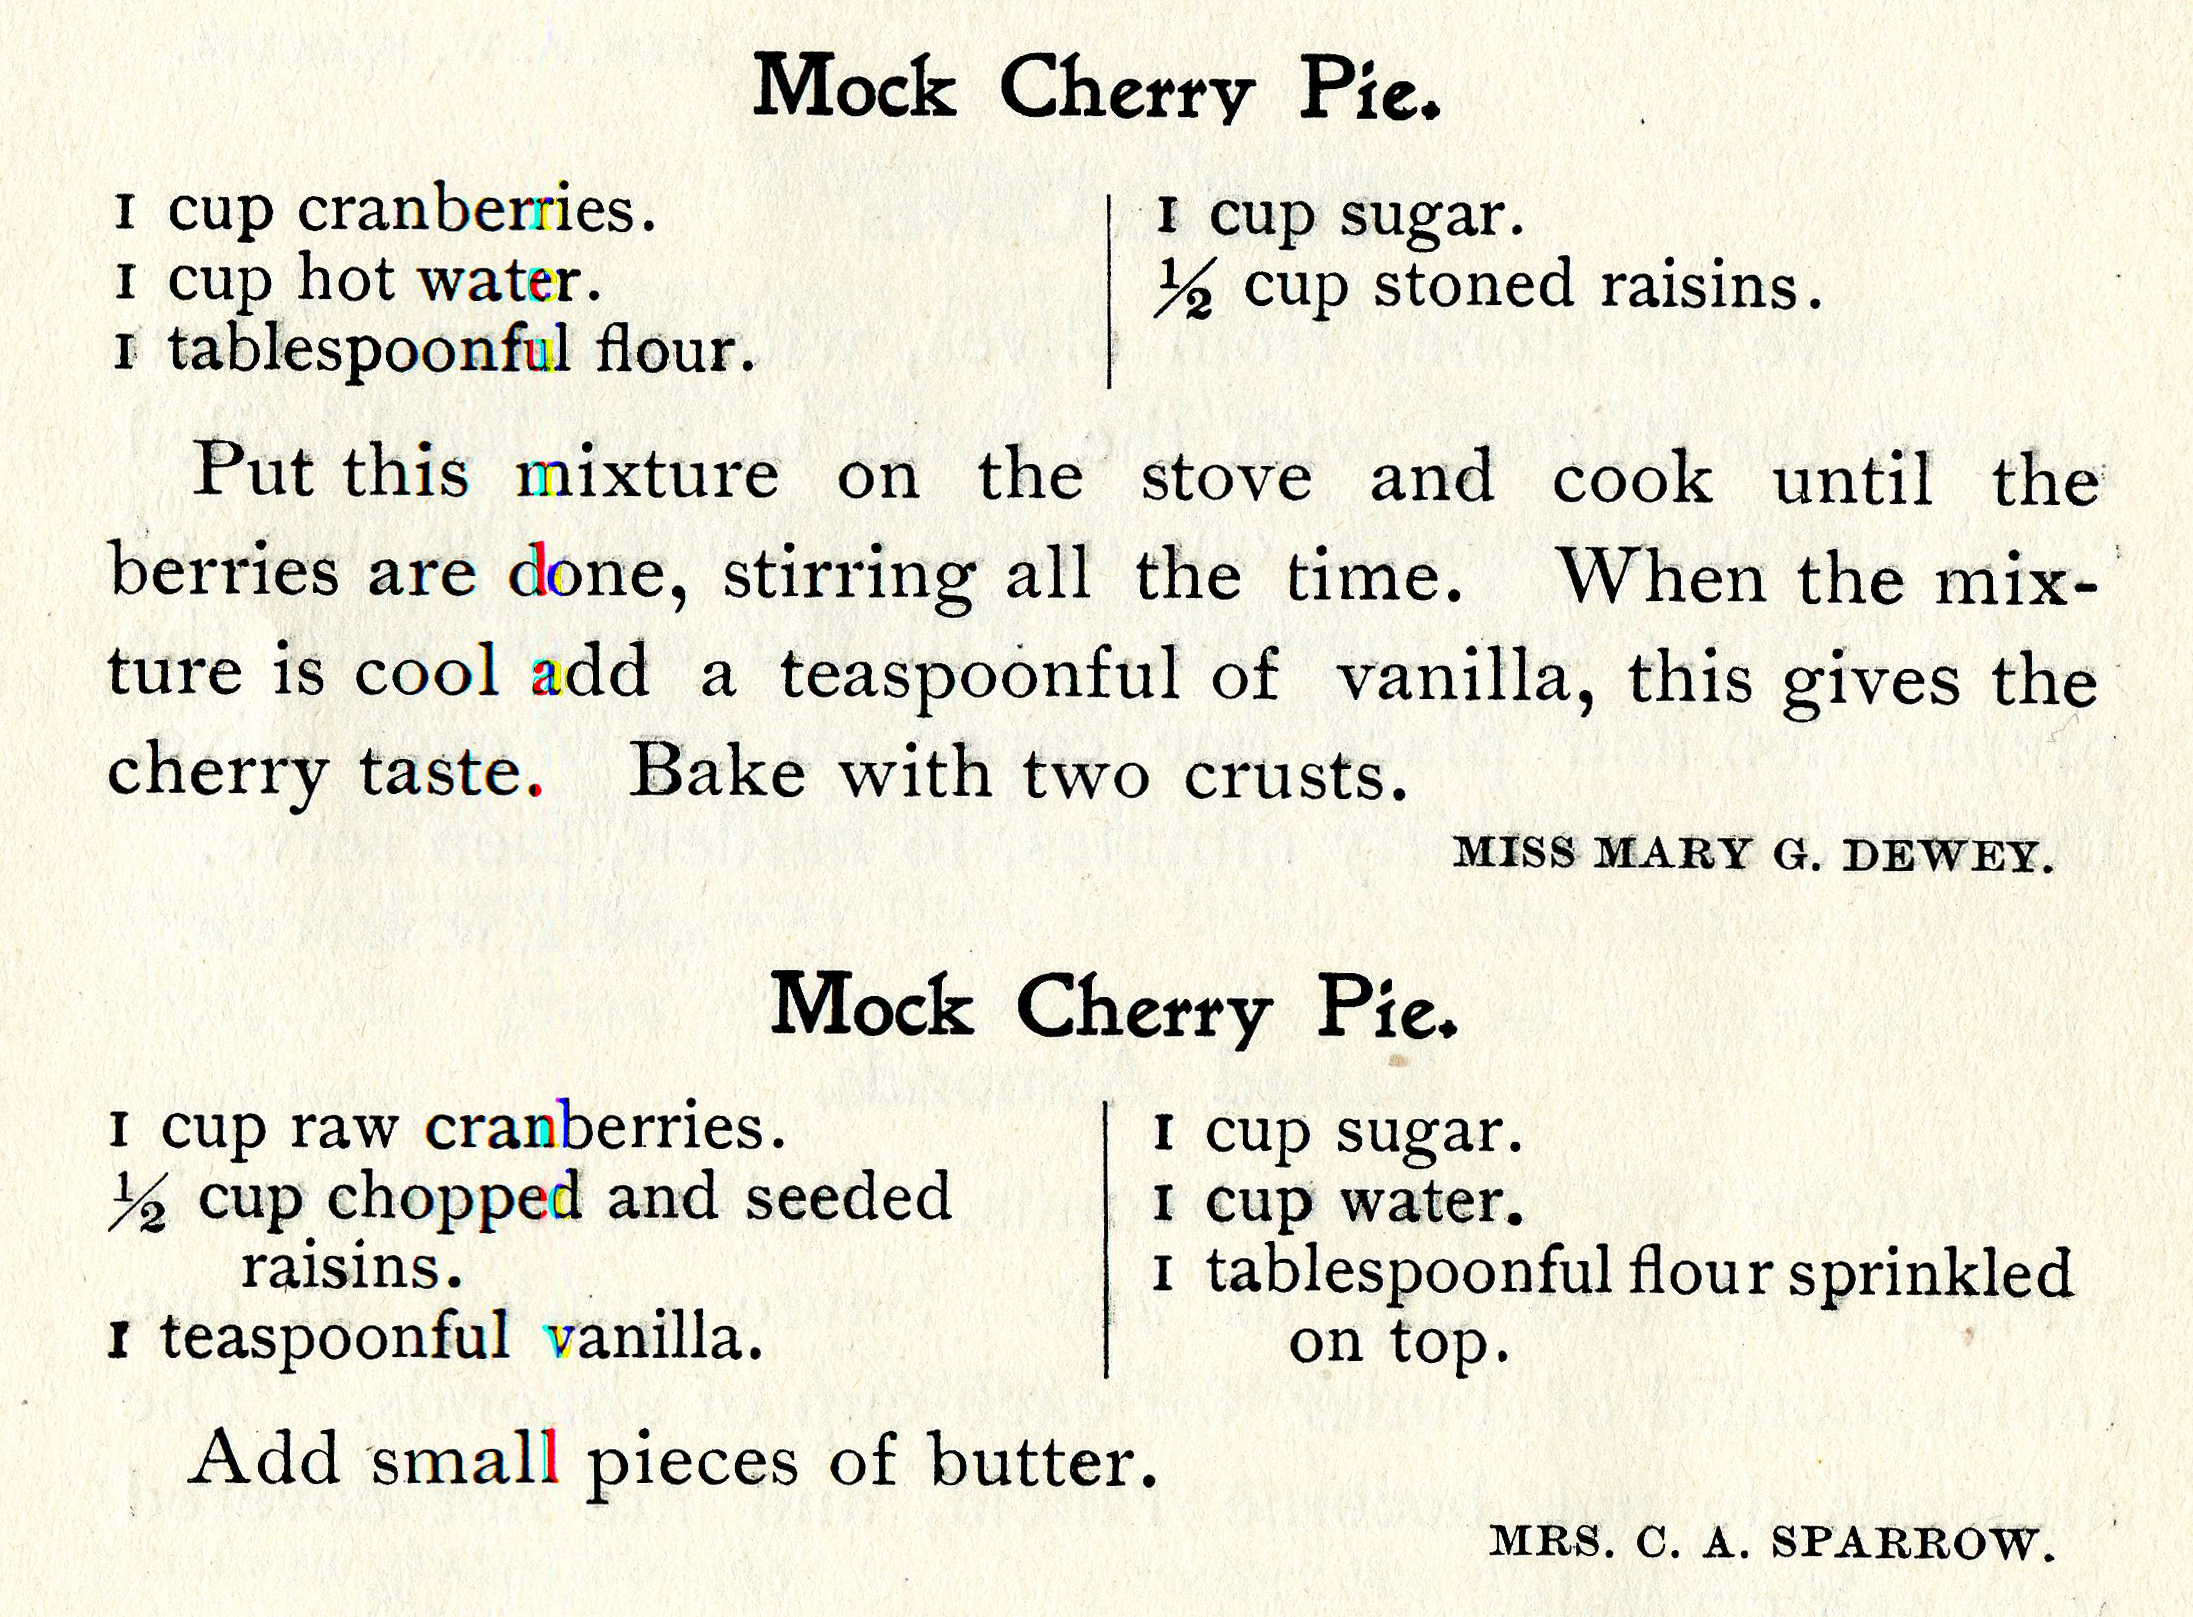 Two recipes for mock cherry pie